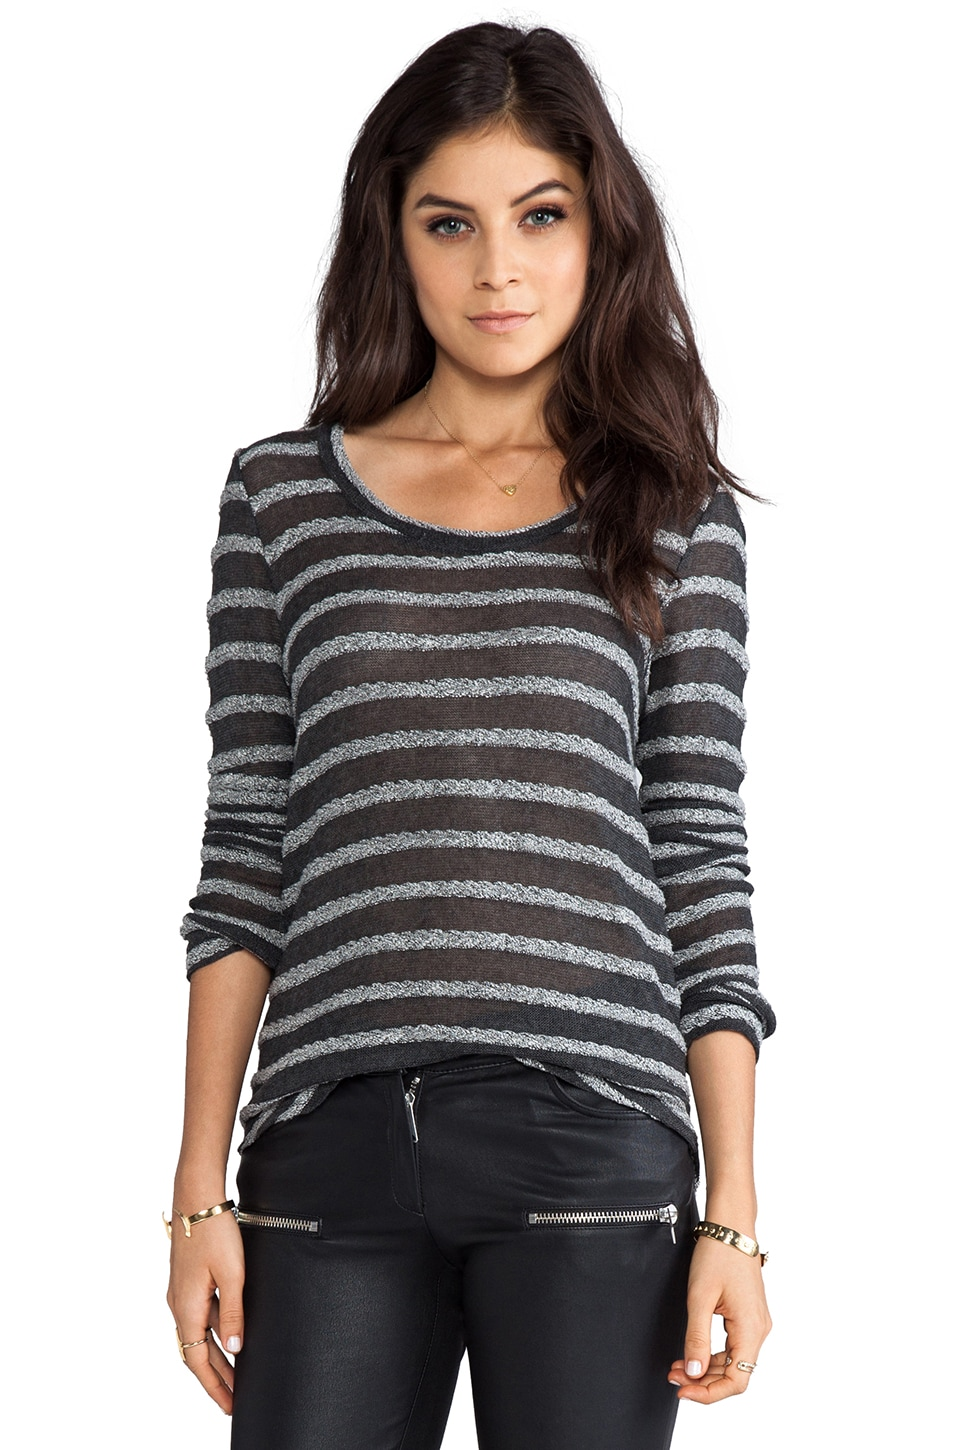 Whetherly Braided Sweater Rosewood Long Sleeve in Charcoal